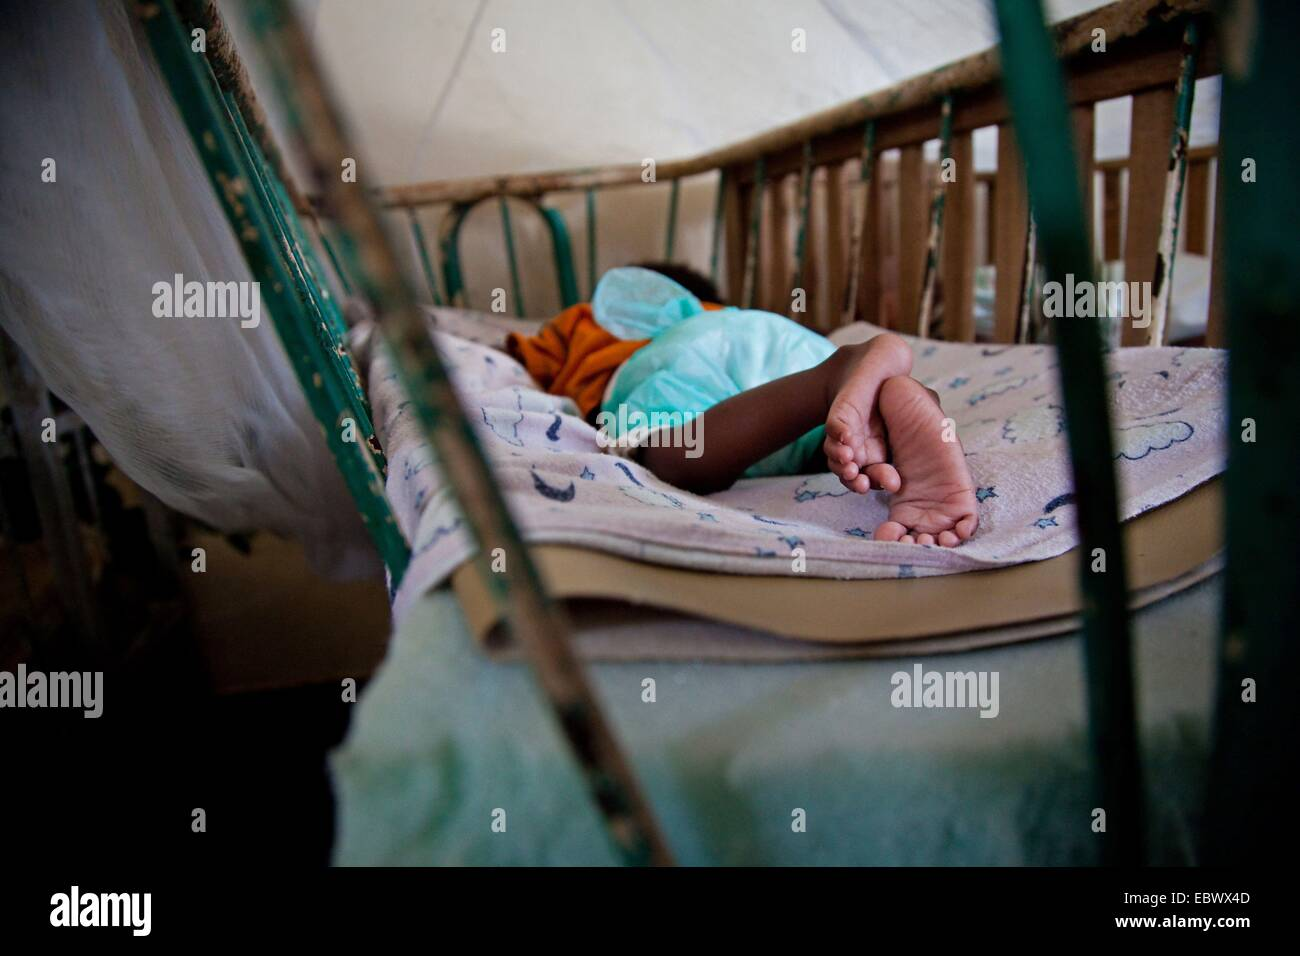 Baby In An Orphanage Sleeping In A Bed With Lattice Bars